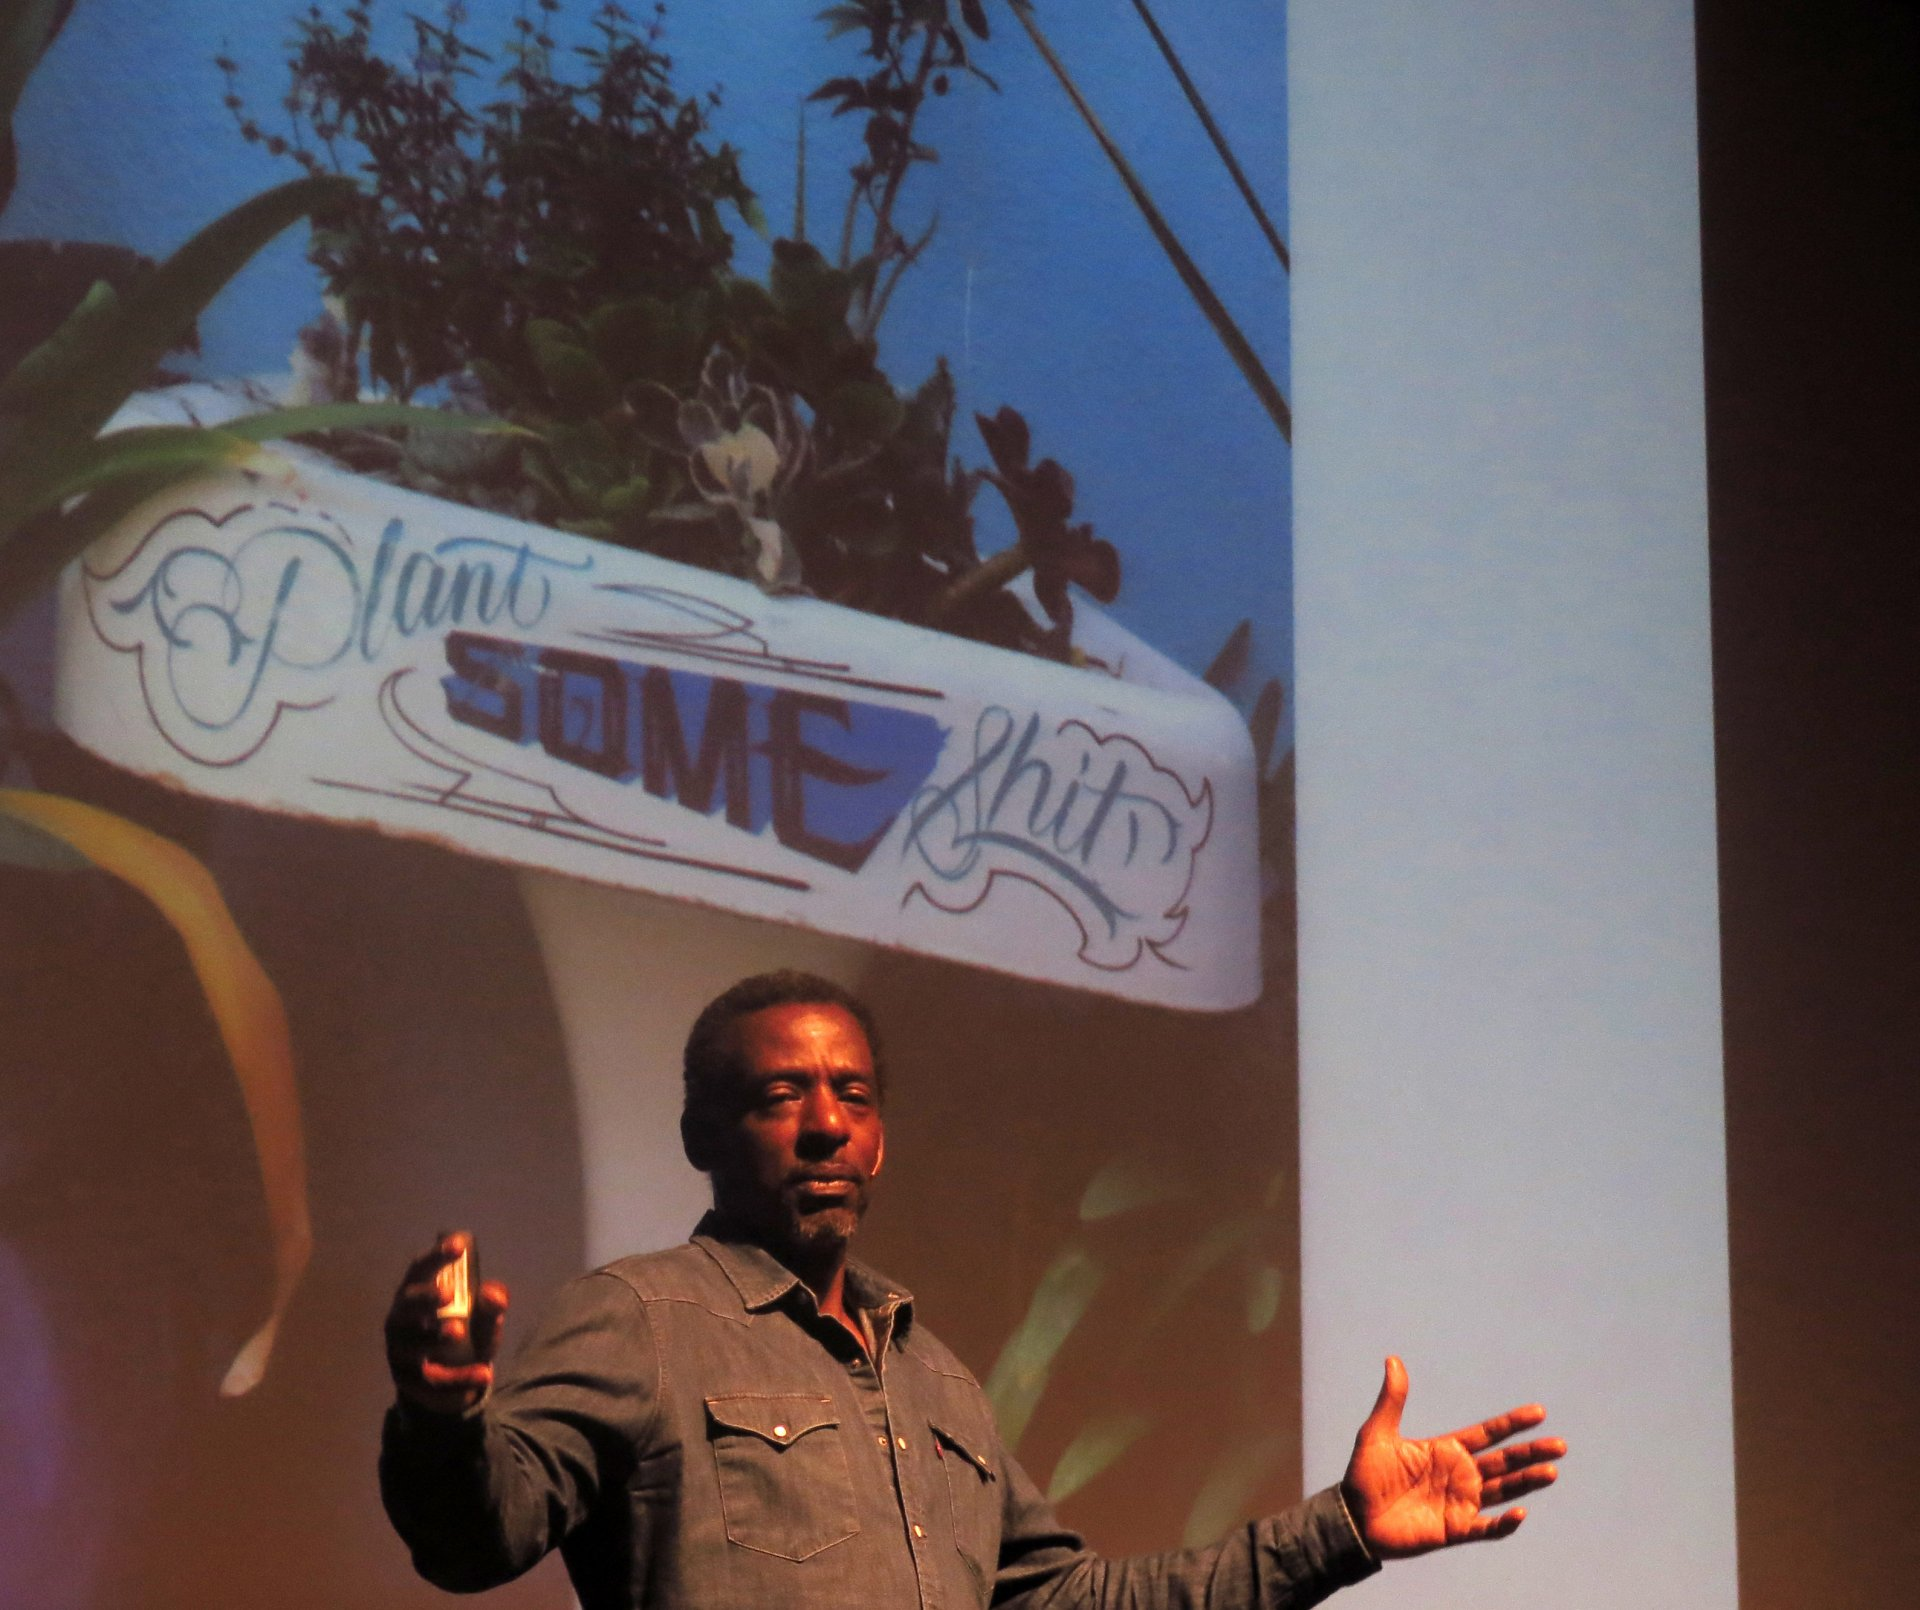 Ron Finley, also known as Gangsta Gardener, speaks at Van Duzer Theatre on Feb. 13. His Ron Finley Project's motto: